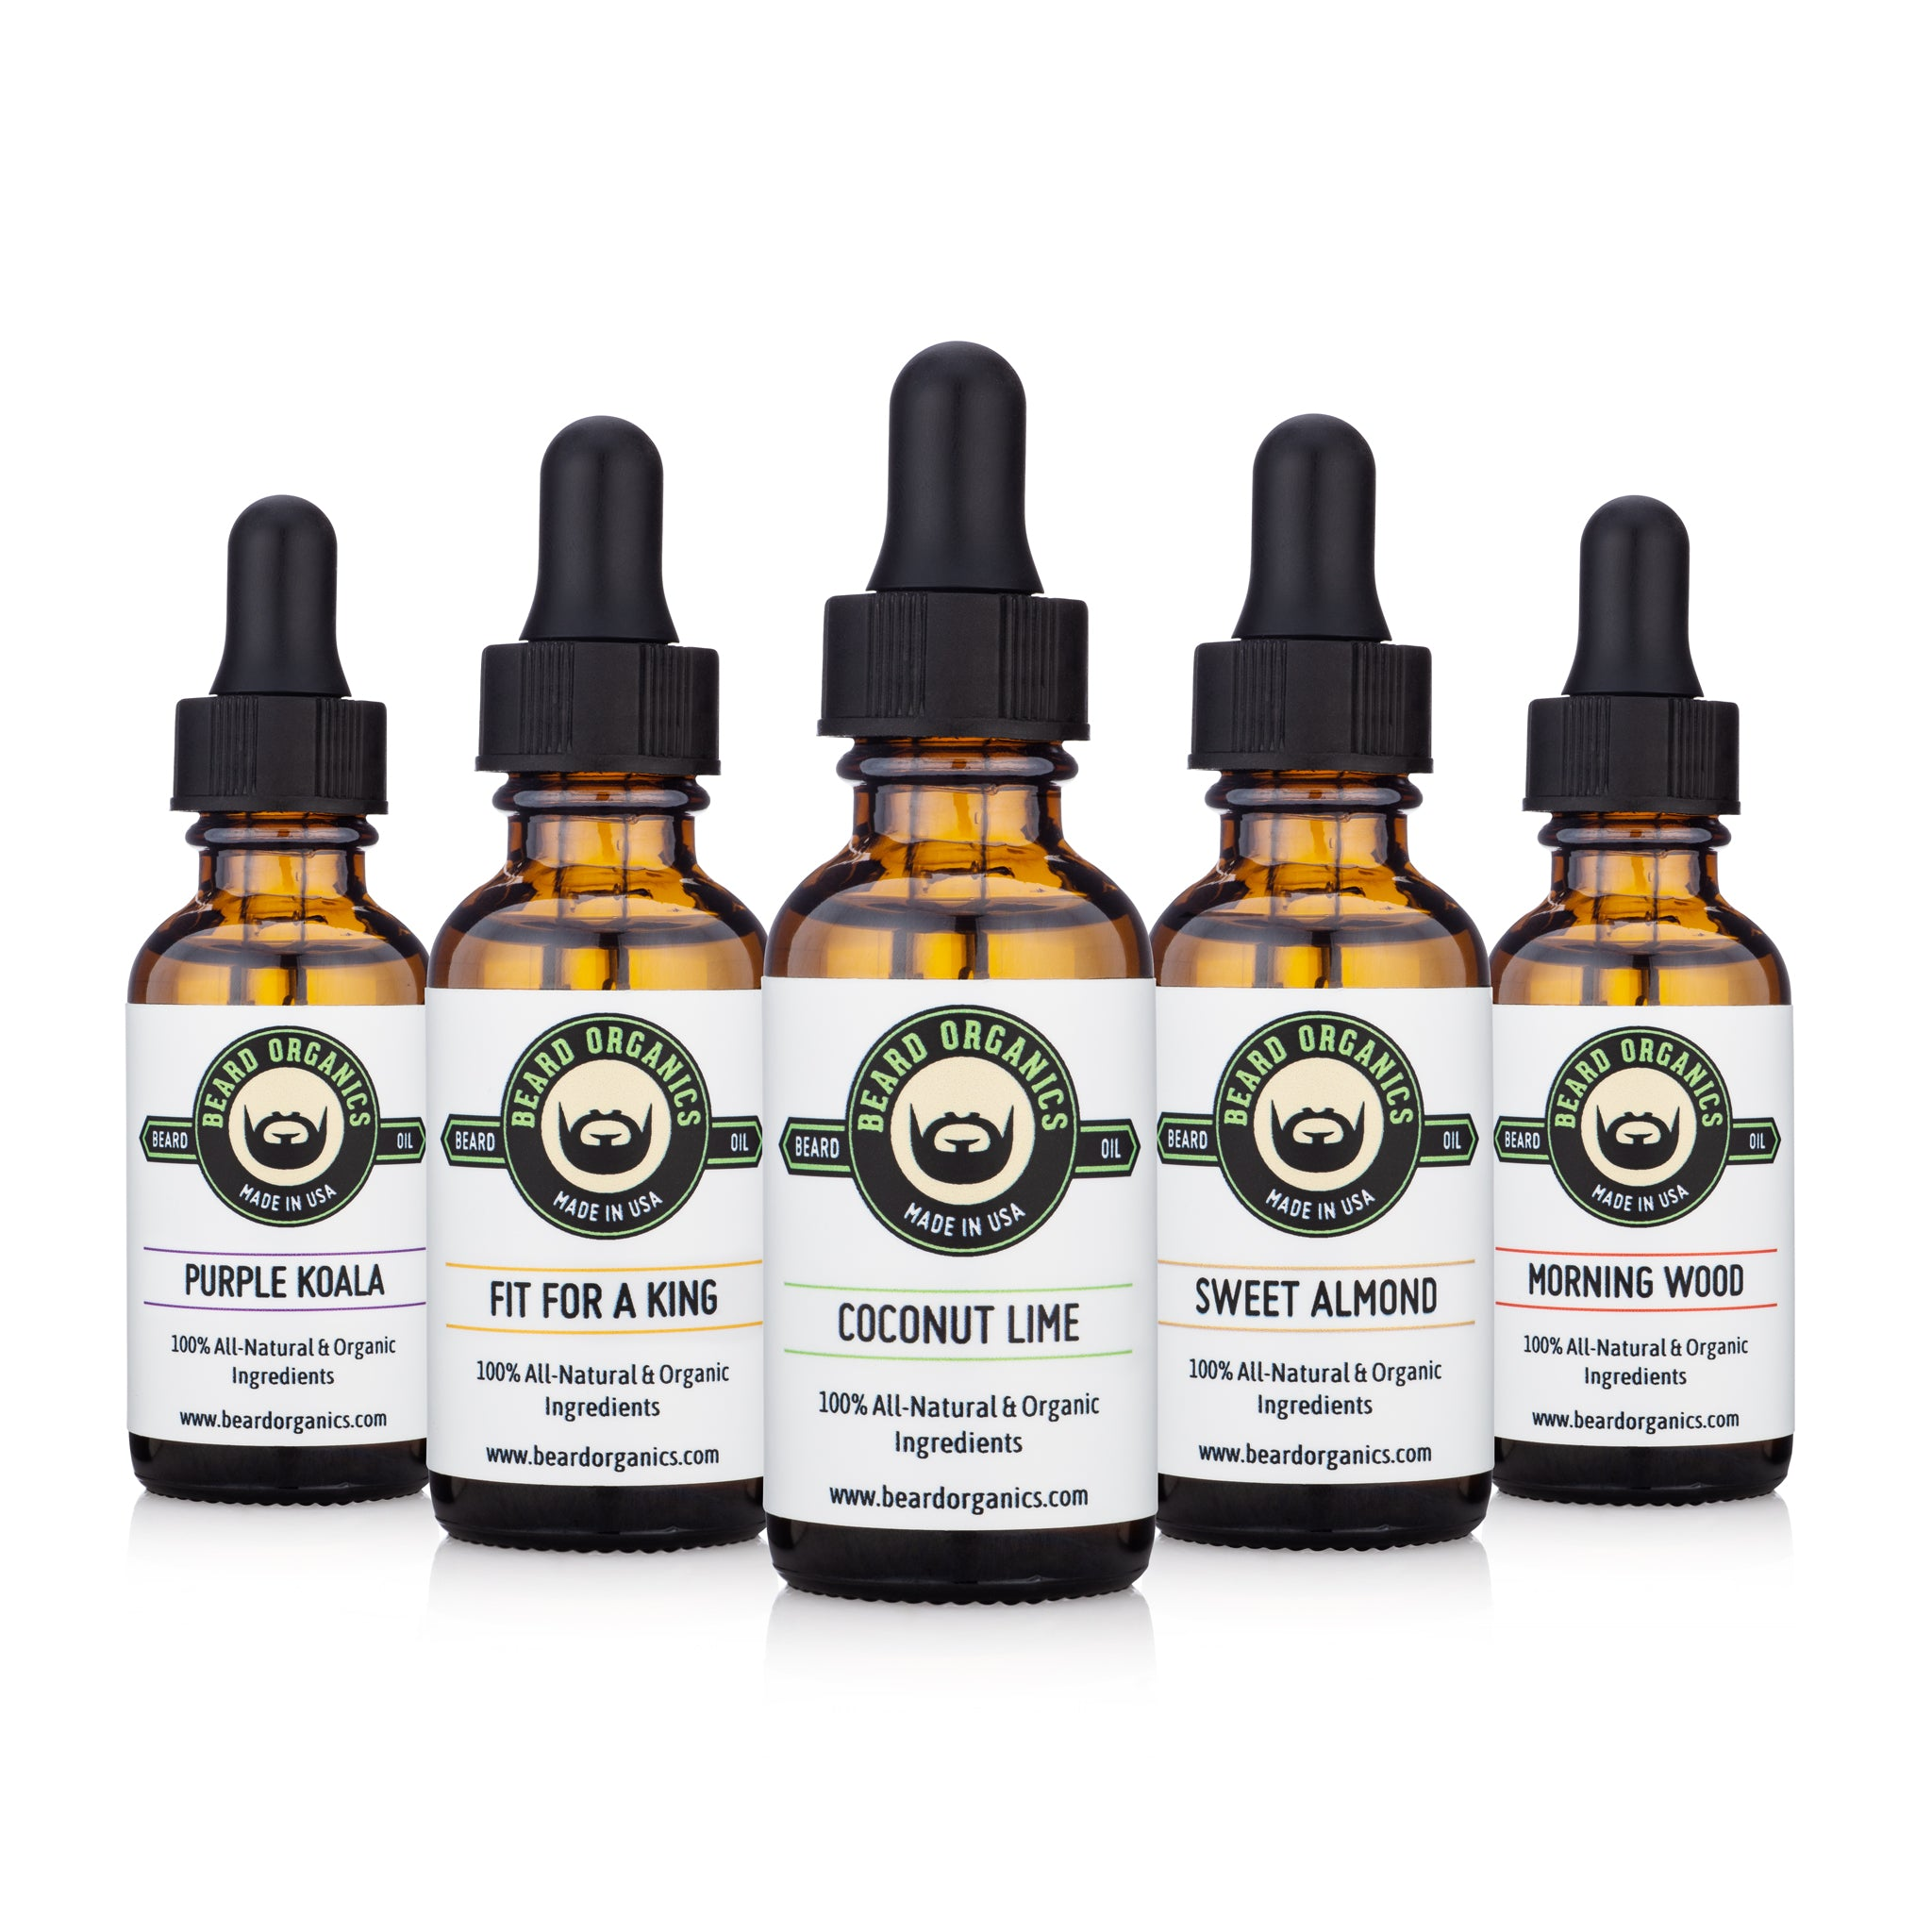 Order Wholesale Beard Oil from Beard Organics